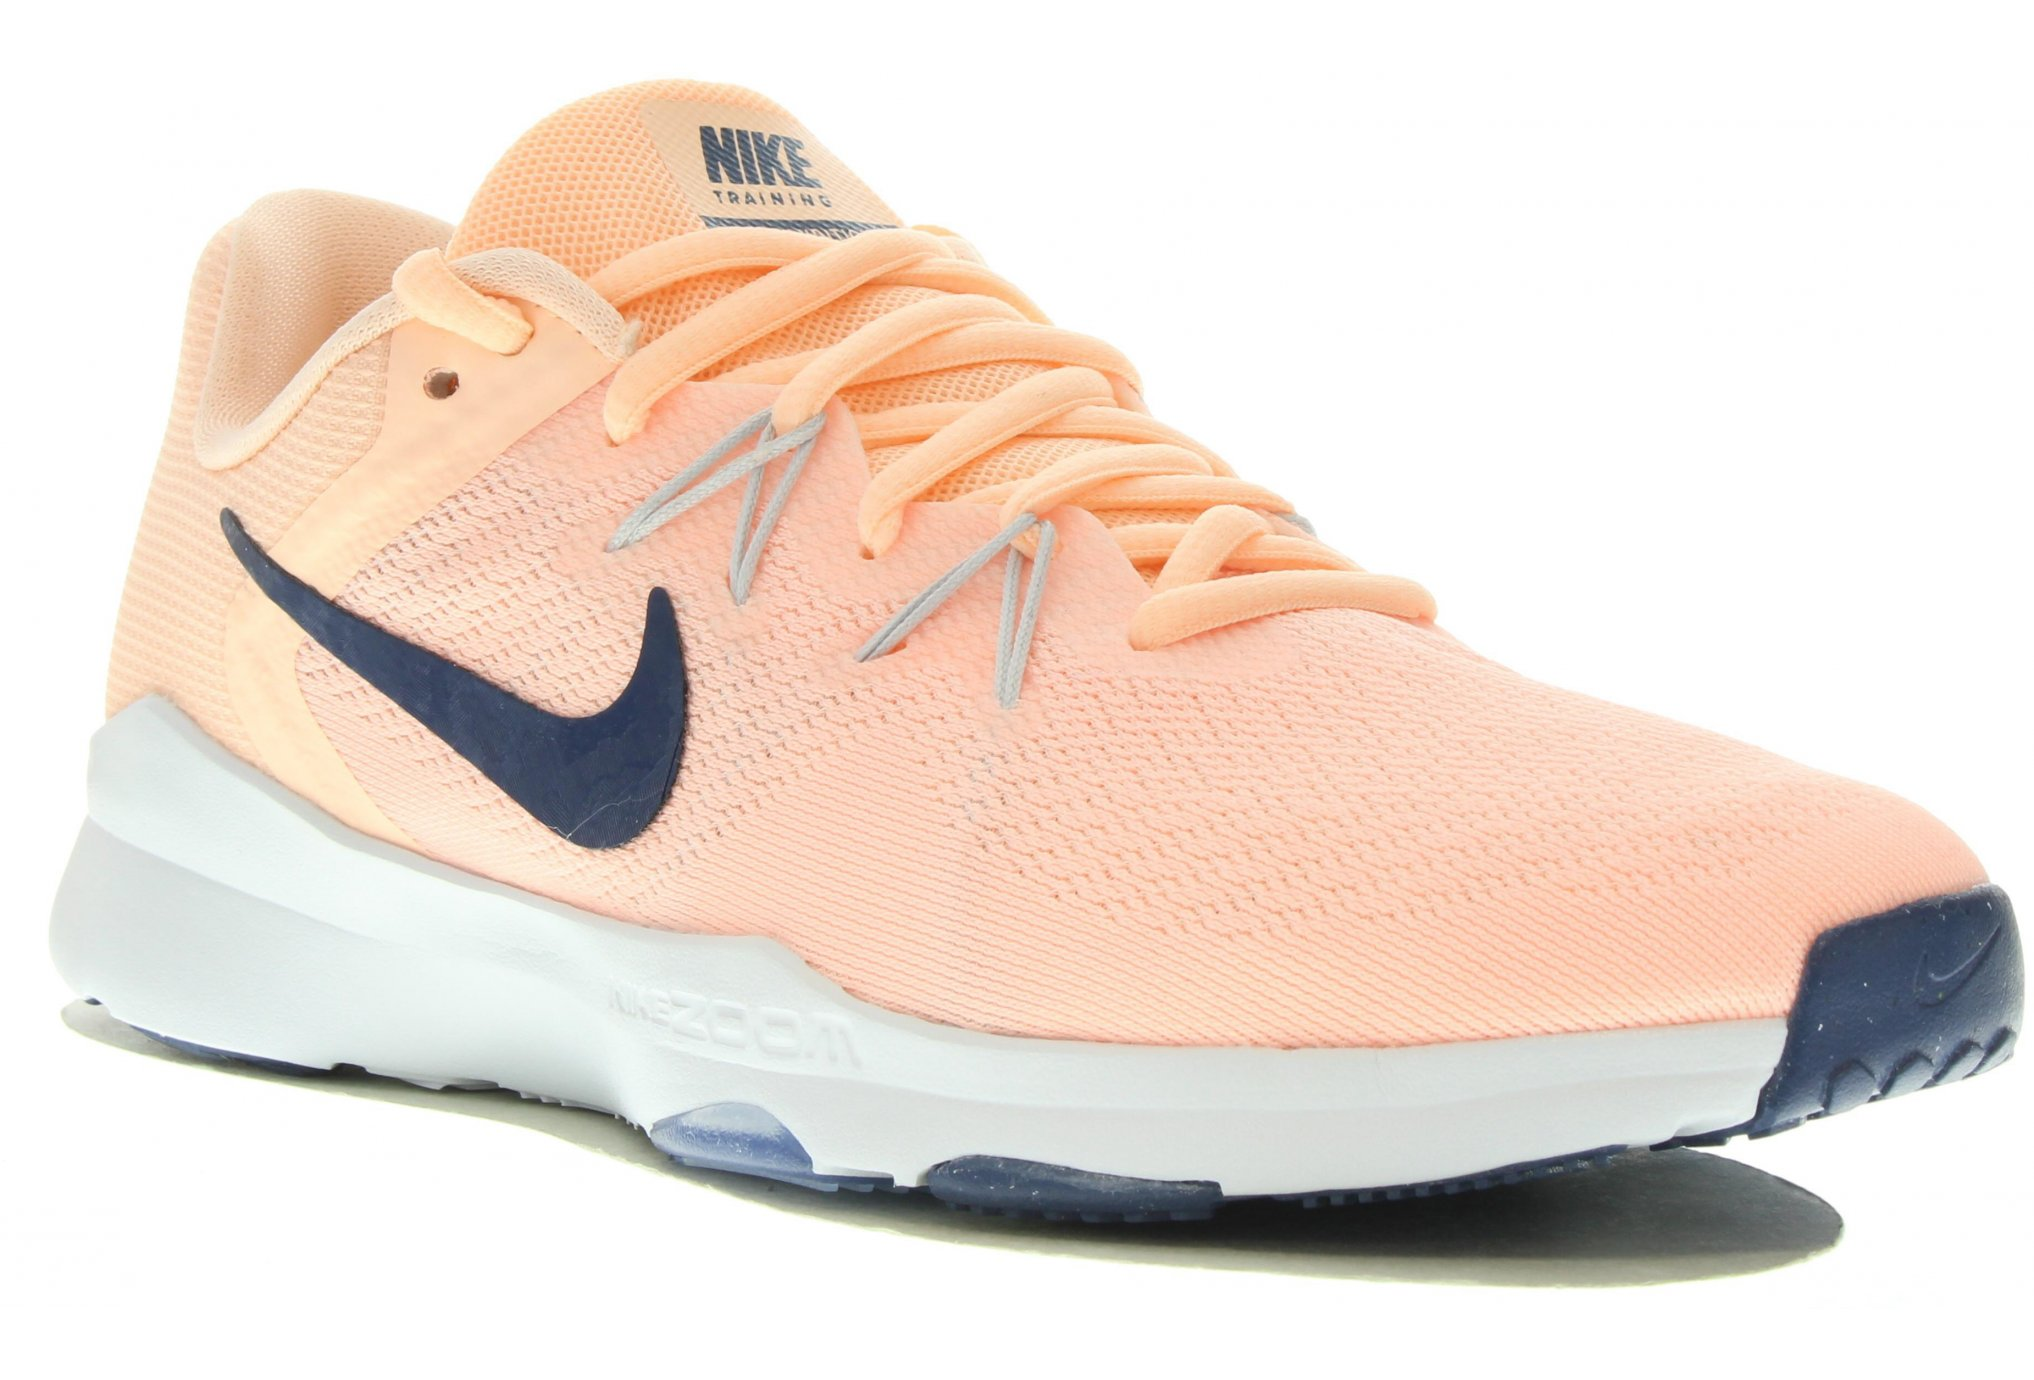 reputable site a9dd8 fe510 Trail Session - Nike Zoom Condition TR 2 W Chaussures running femme